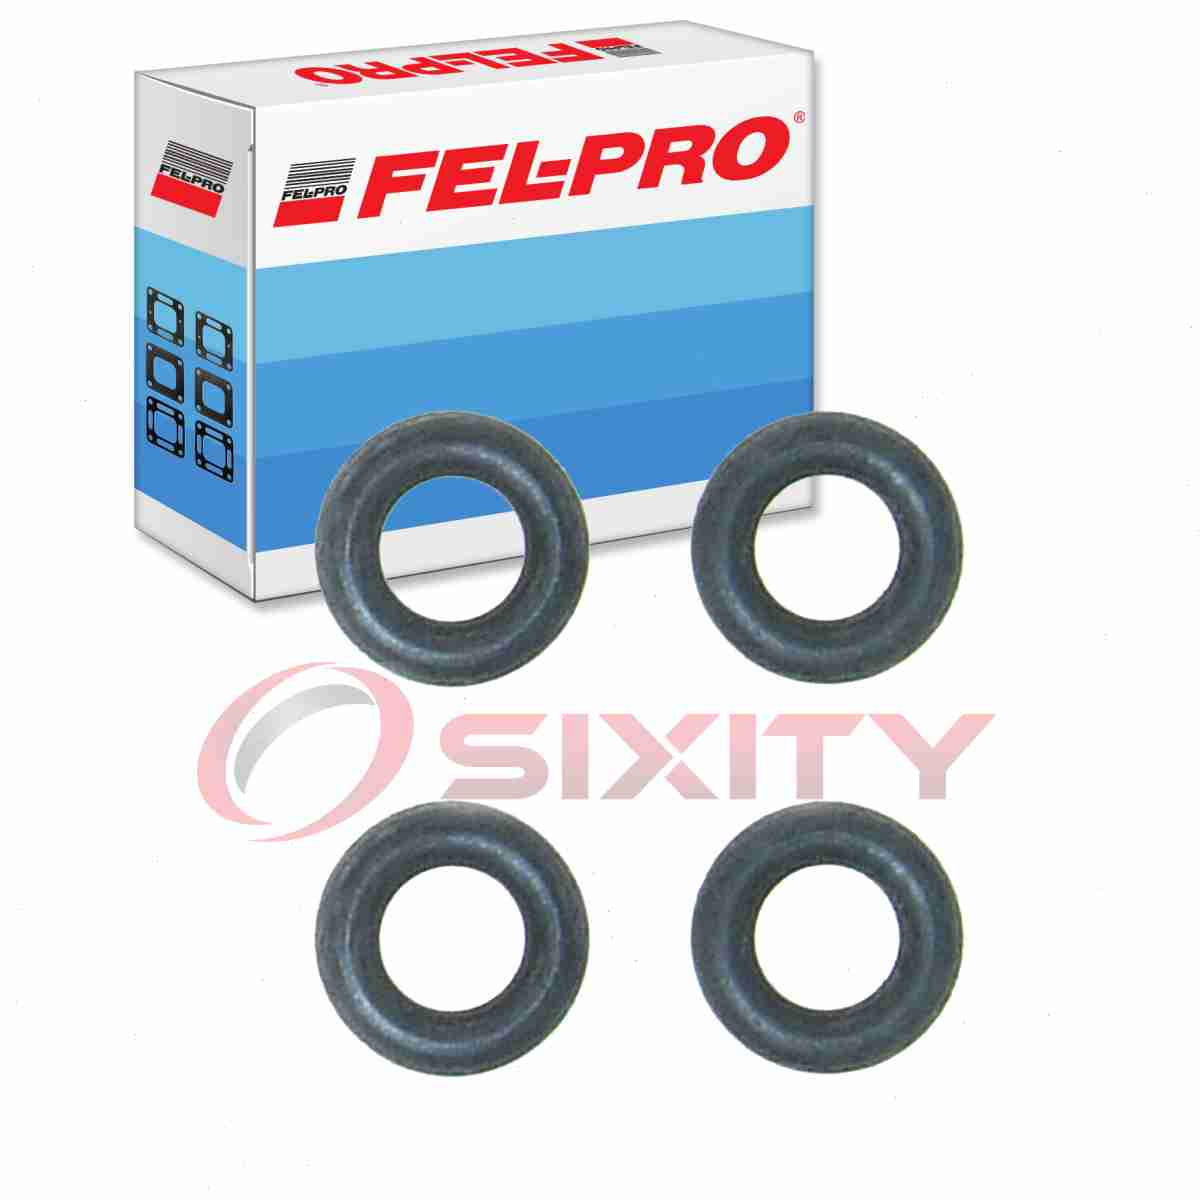 Fel-Pro Fuel Injector O-Ring Kit for 2001-2017 Ford Escape 2.0L 2.3L 2.5L ce